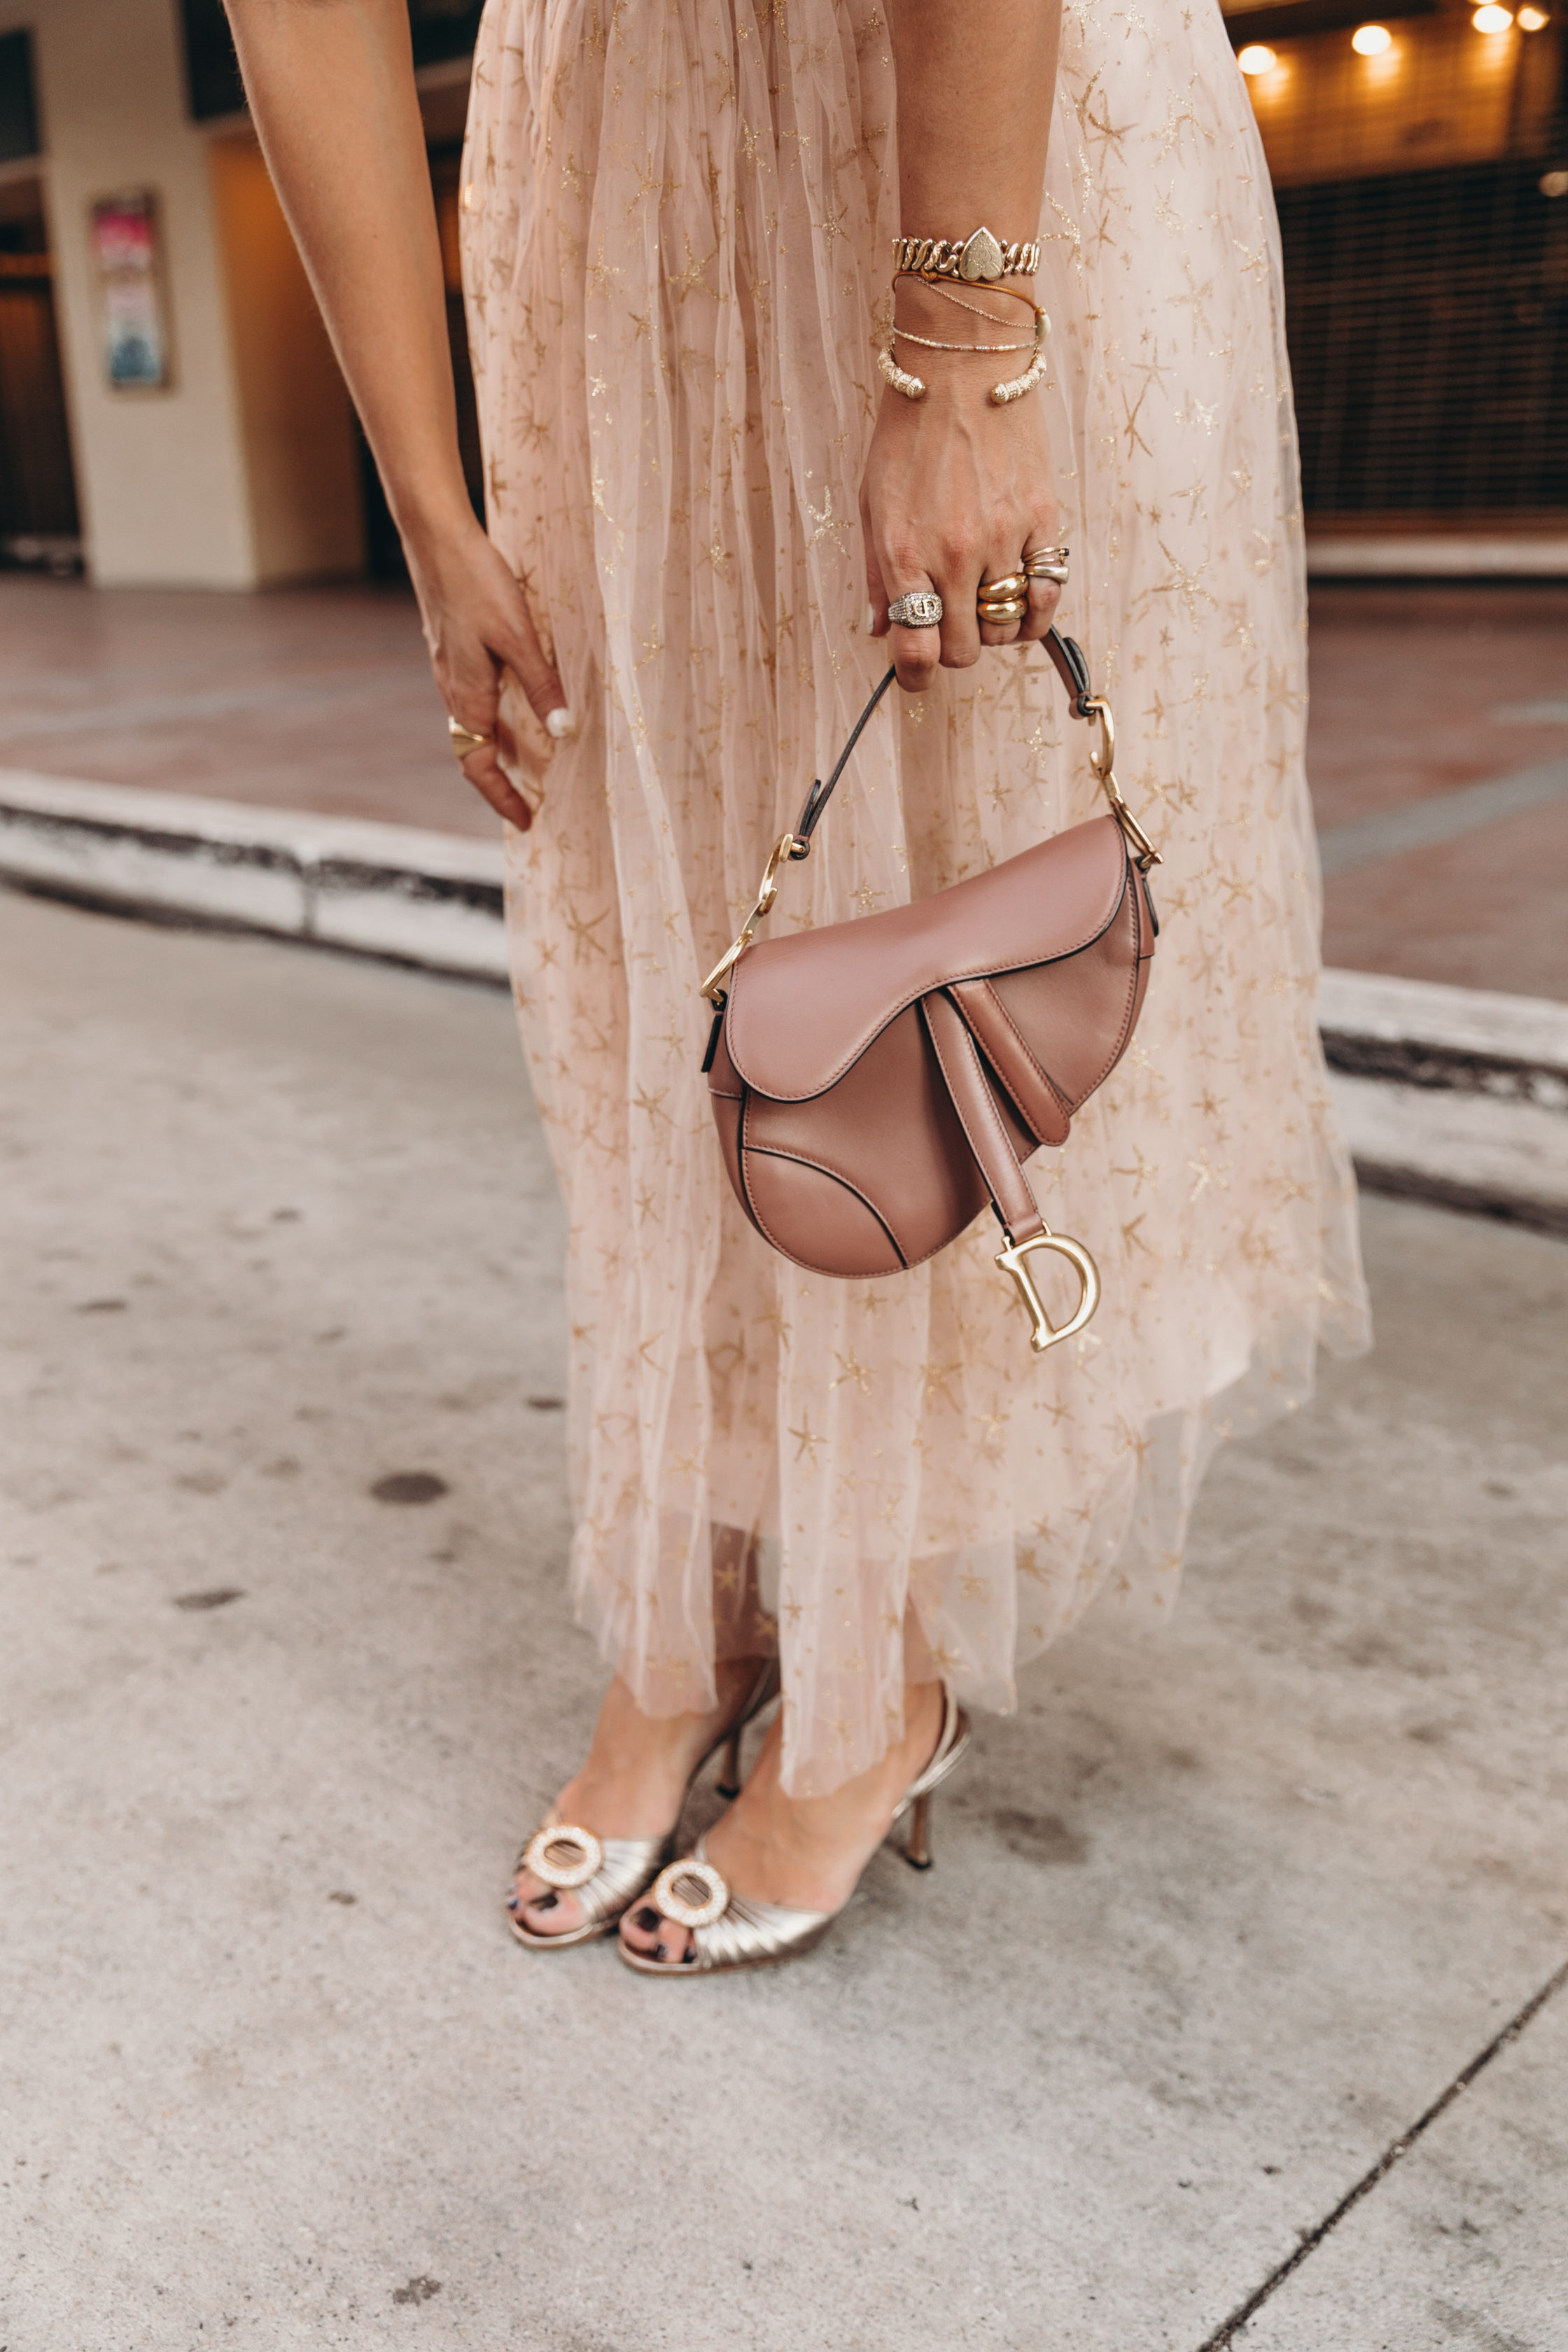 Party outfit wearing a Champagne tulle dress and Manolo Blahnik sandals